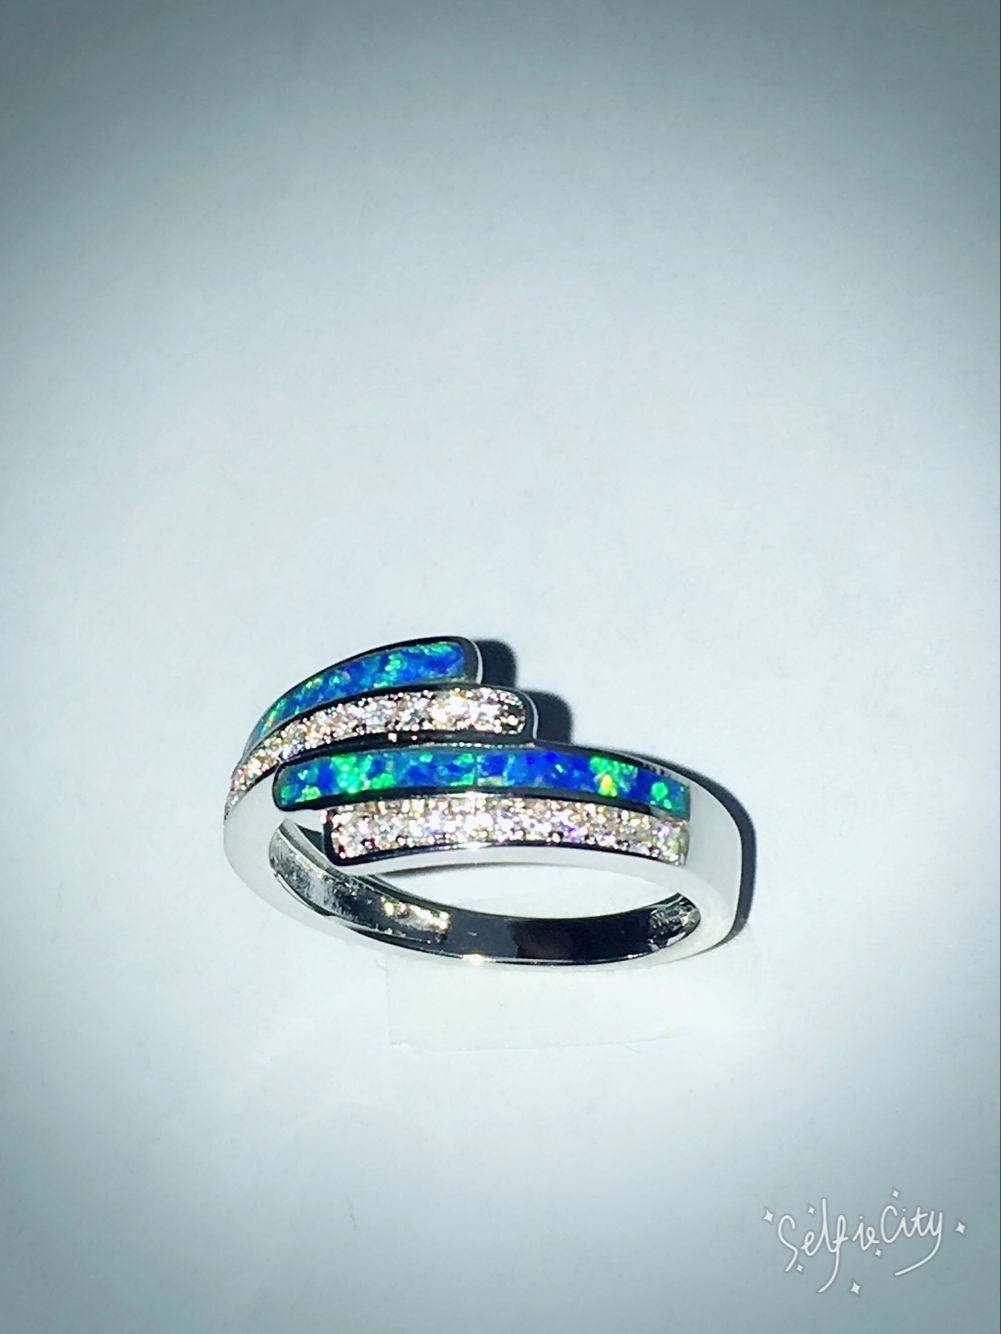 Silver Created Opal Jewelry Rings pictures & photos